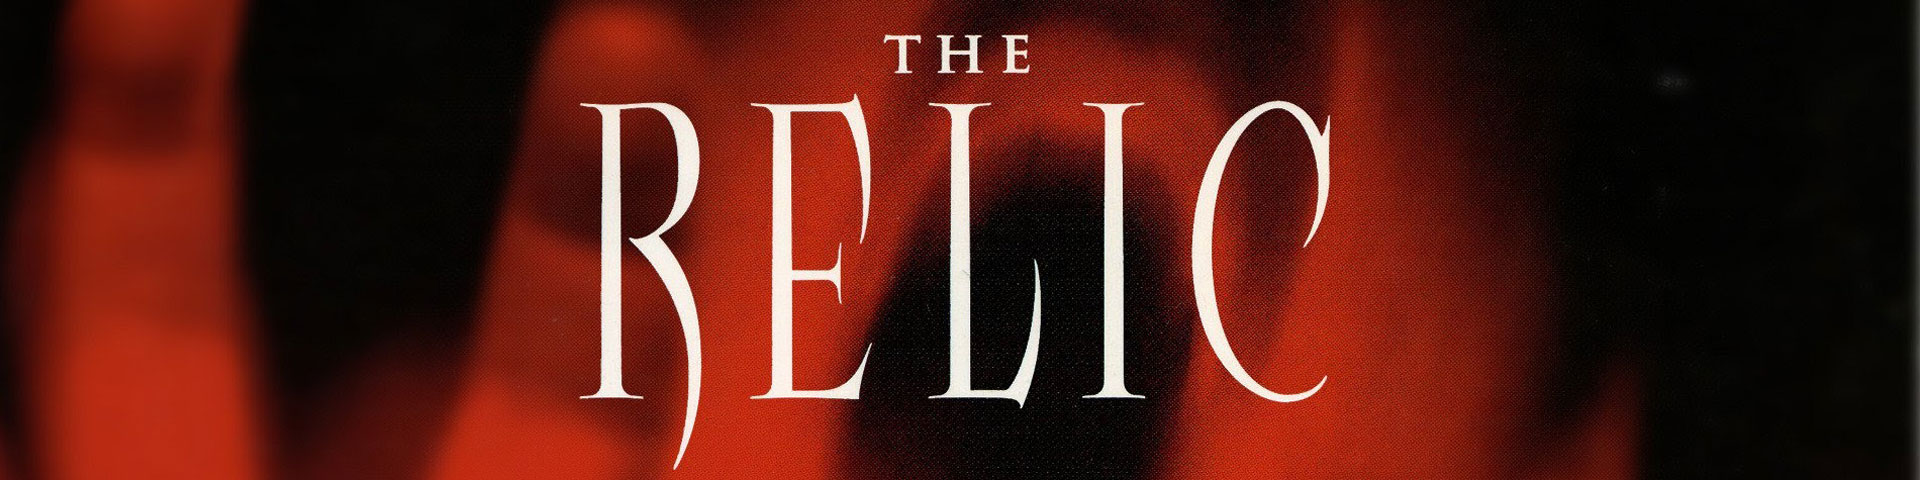 "The words ""The Relic"" written over a distorted, screaming red face. The face appears over a black background."